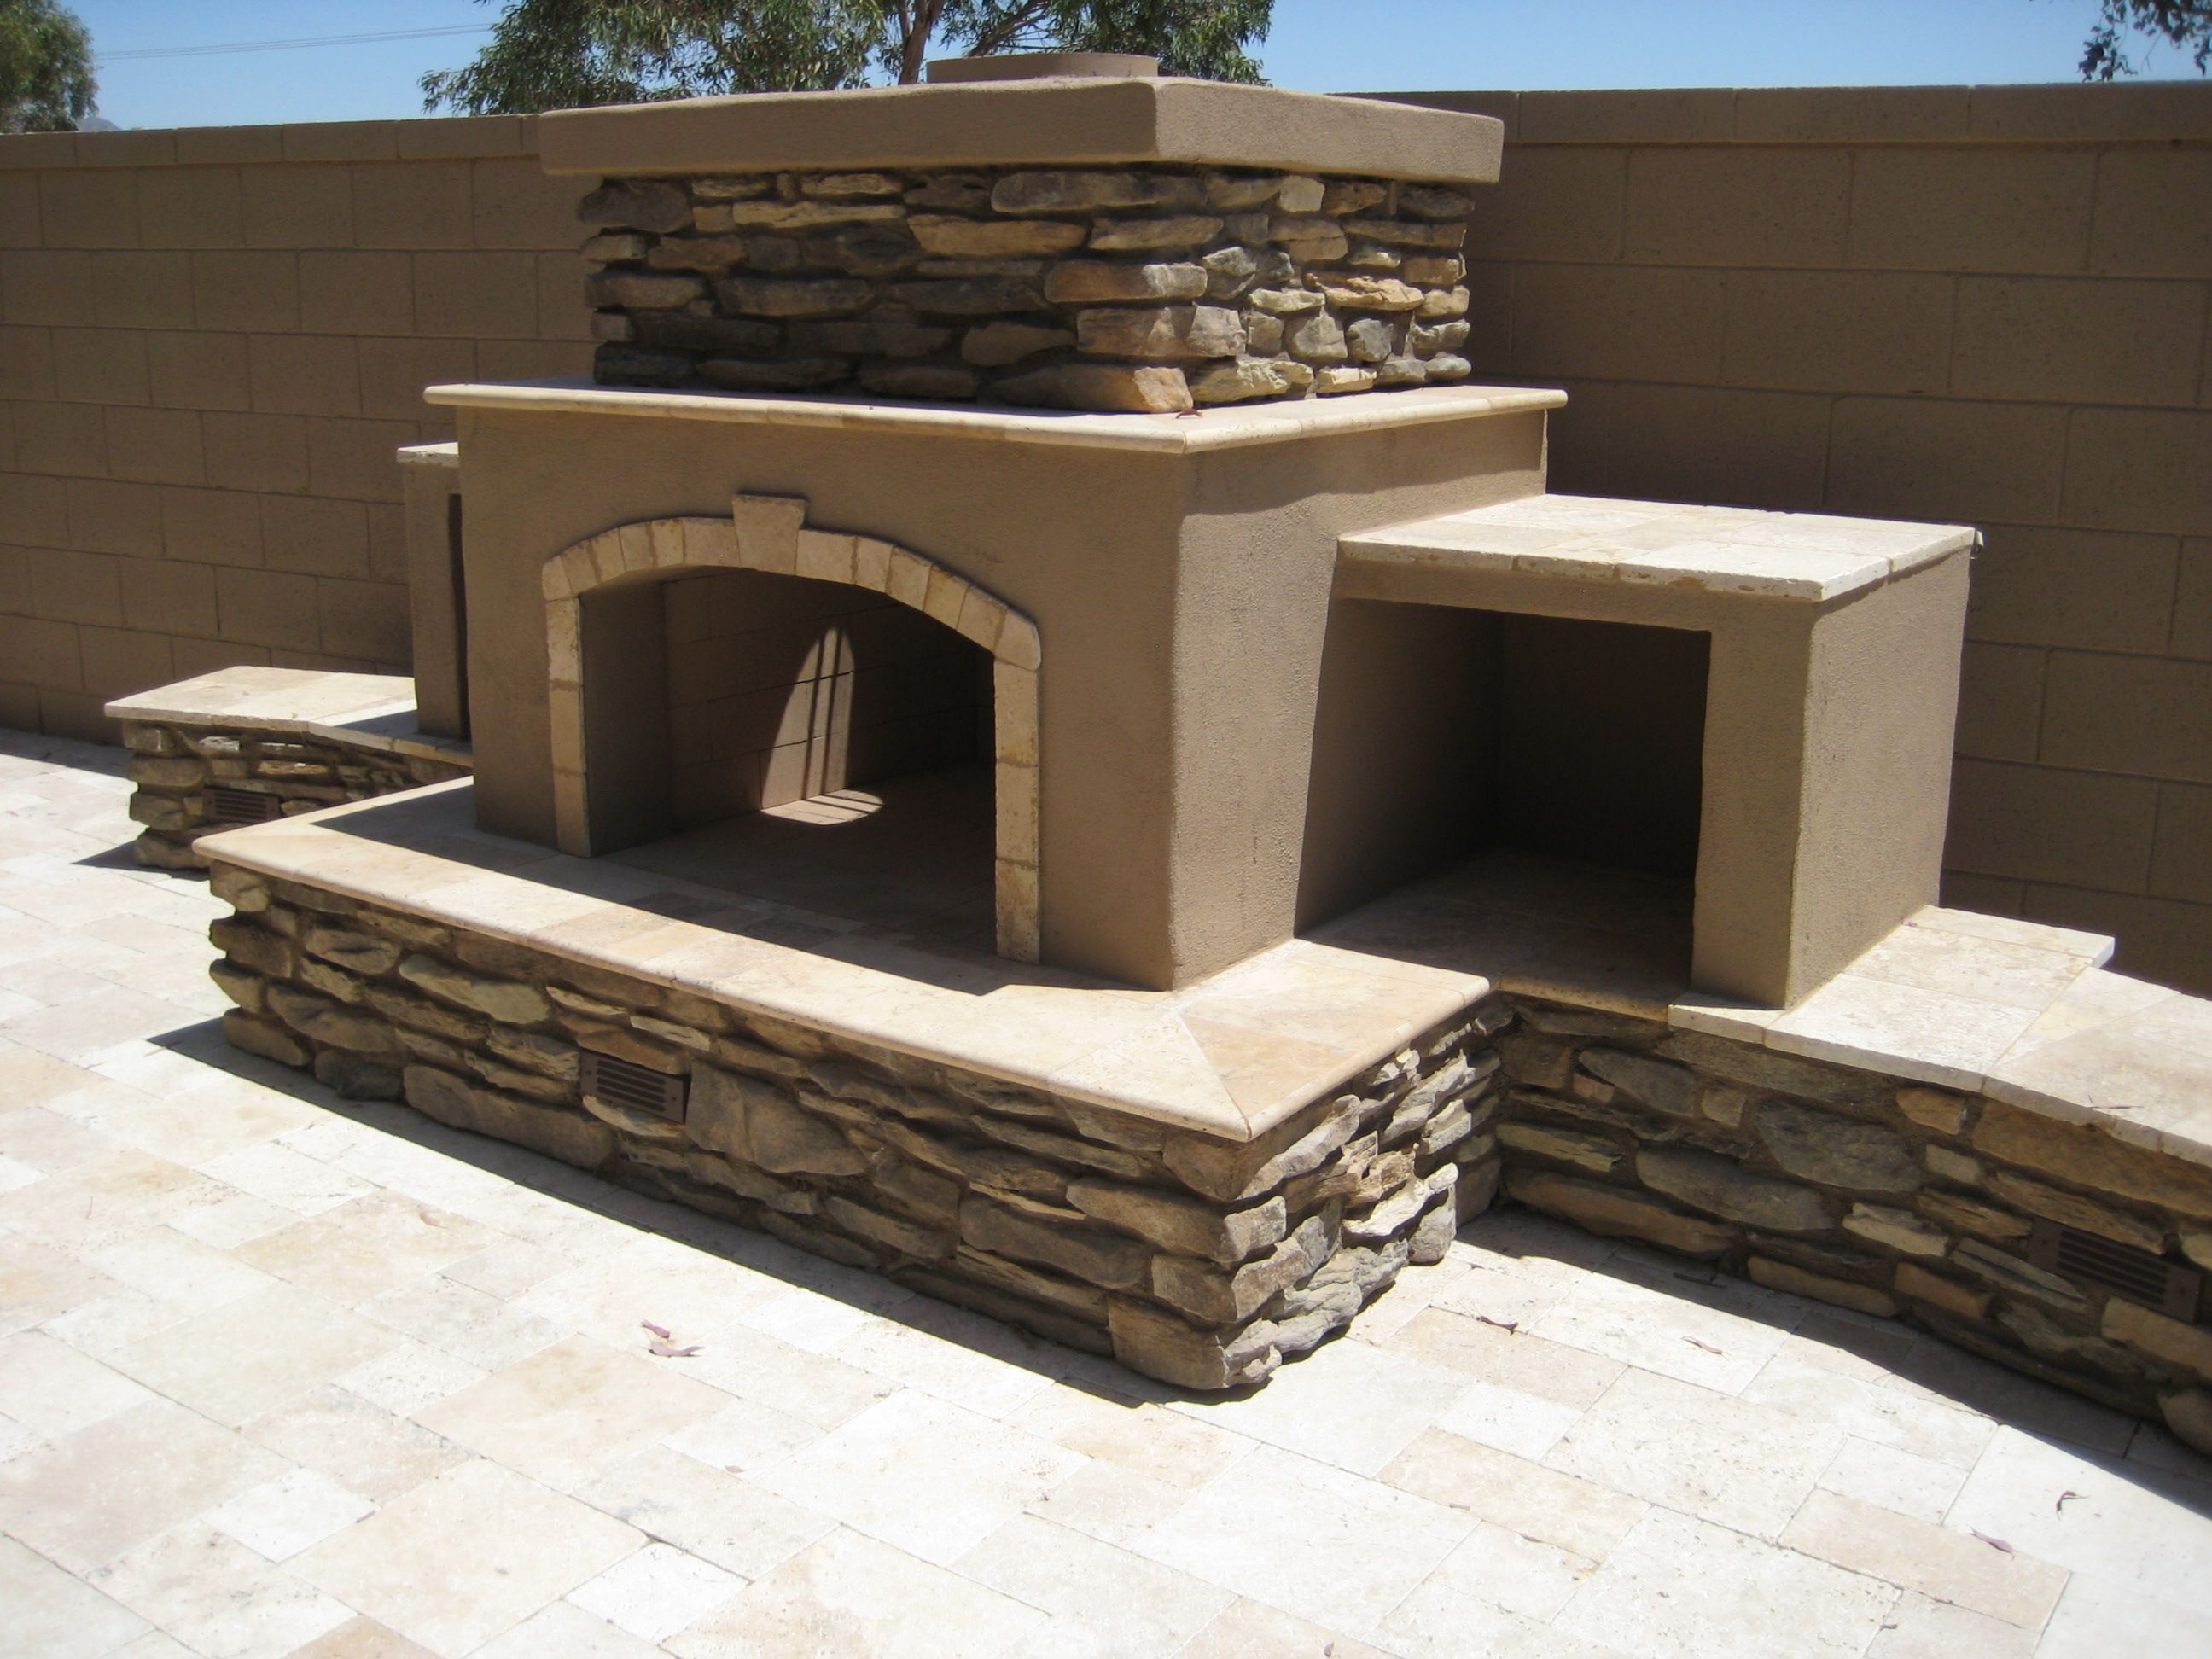 Serving Phoenix, AZ With Premium Outdoor Kitchens, Fireplaces, And  Barbeques! Attain The Backyard Of Your Dreams With Outside Living Concepts!